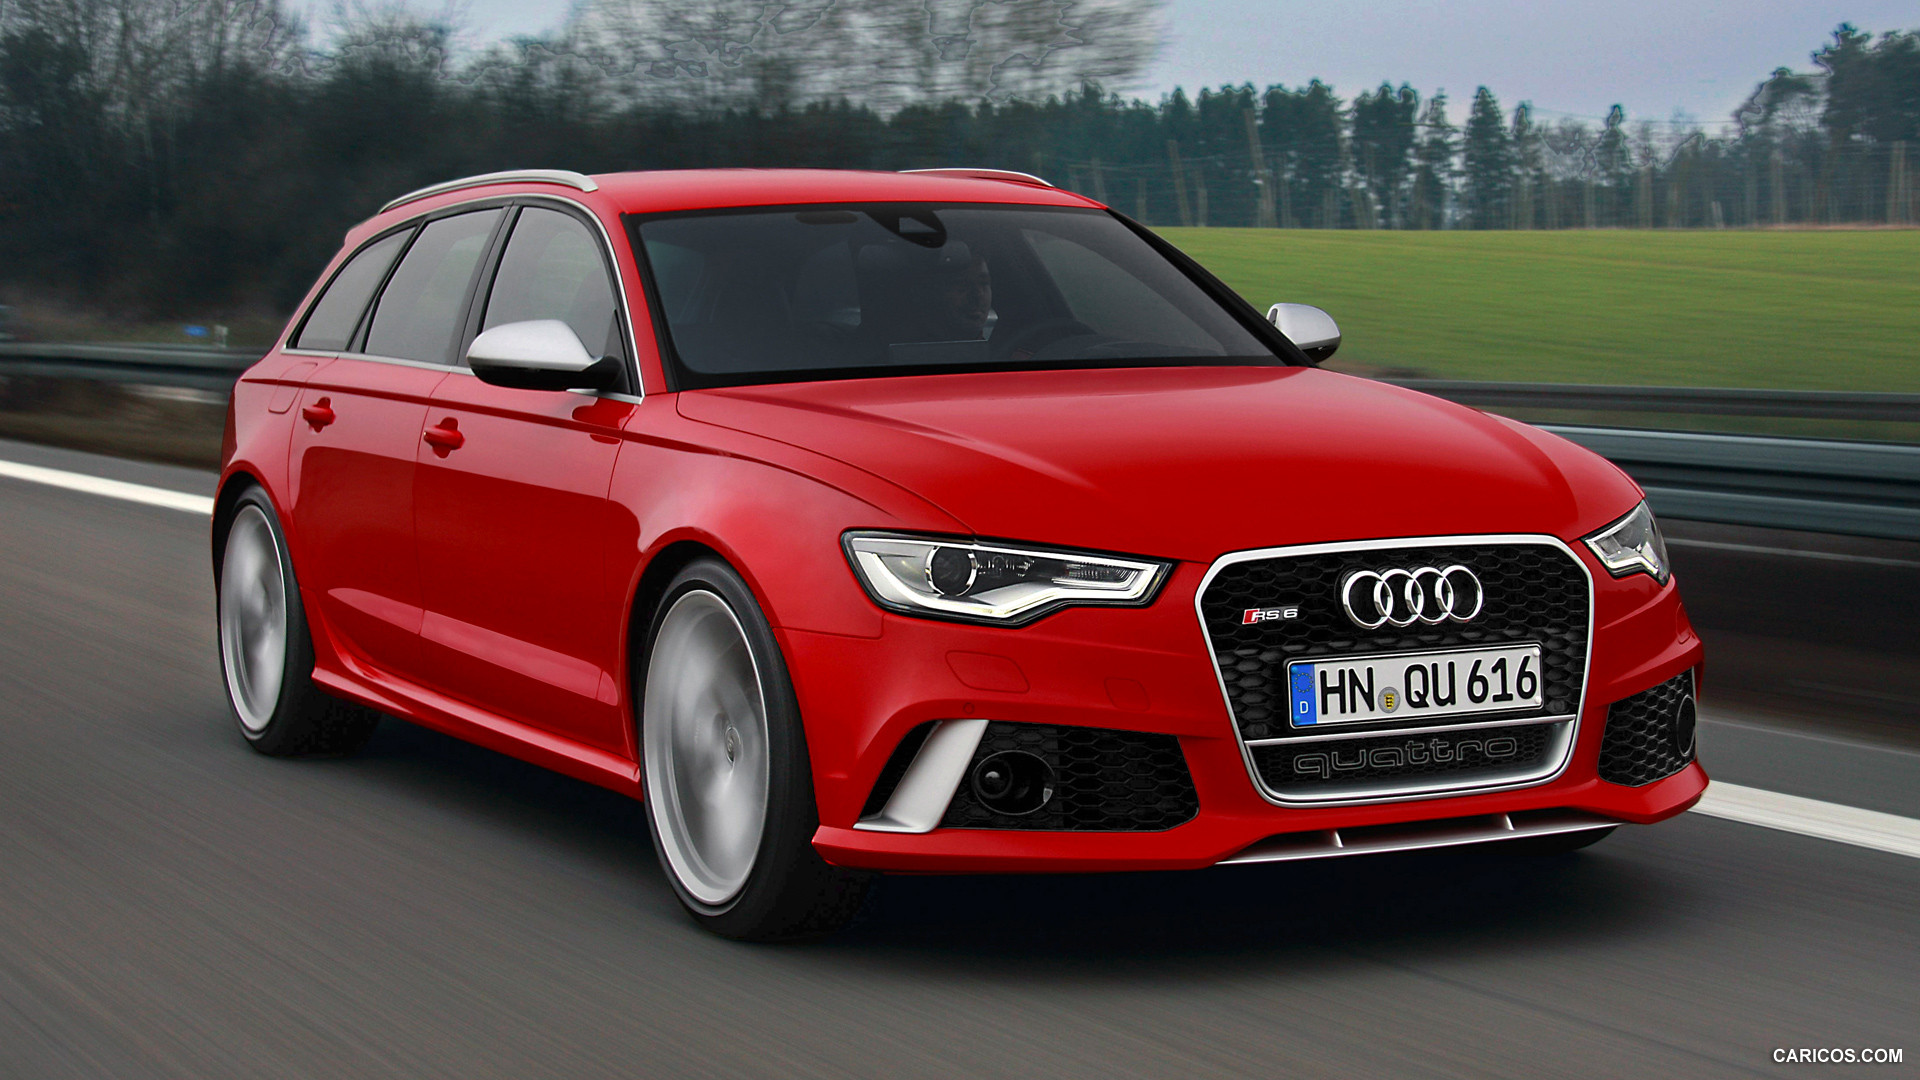 Audi Rs6 Avant Photos Photo Gallery Page 2